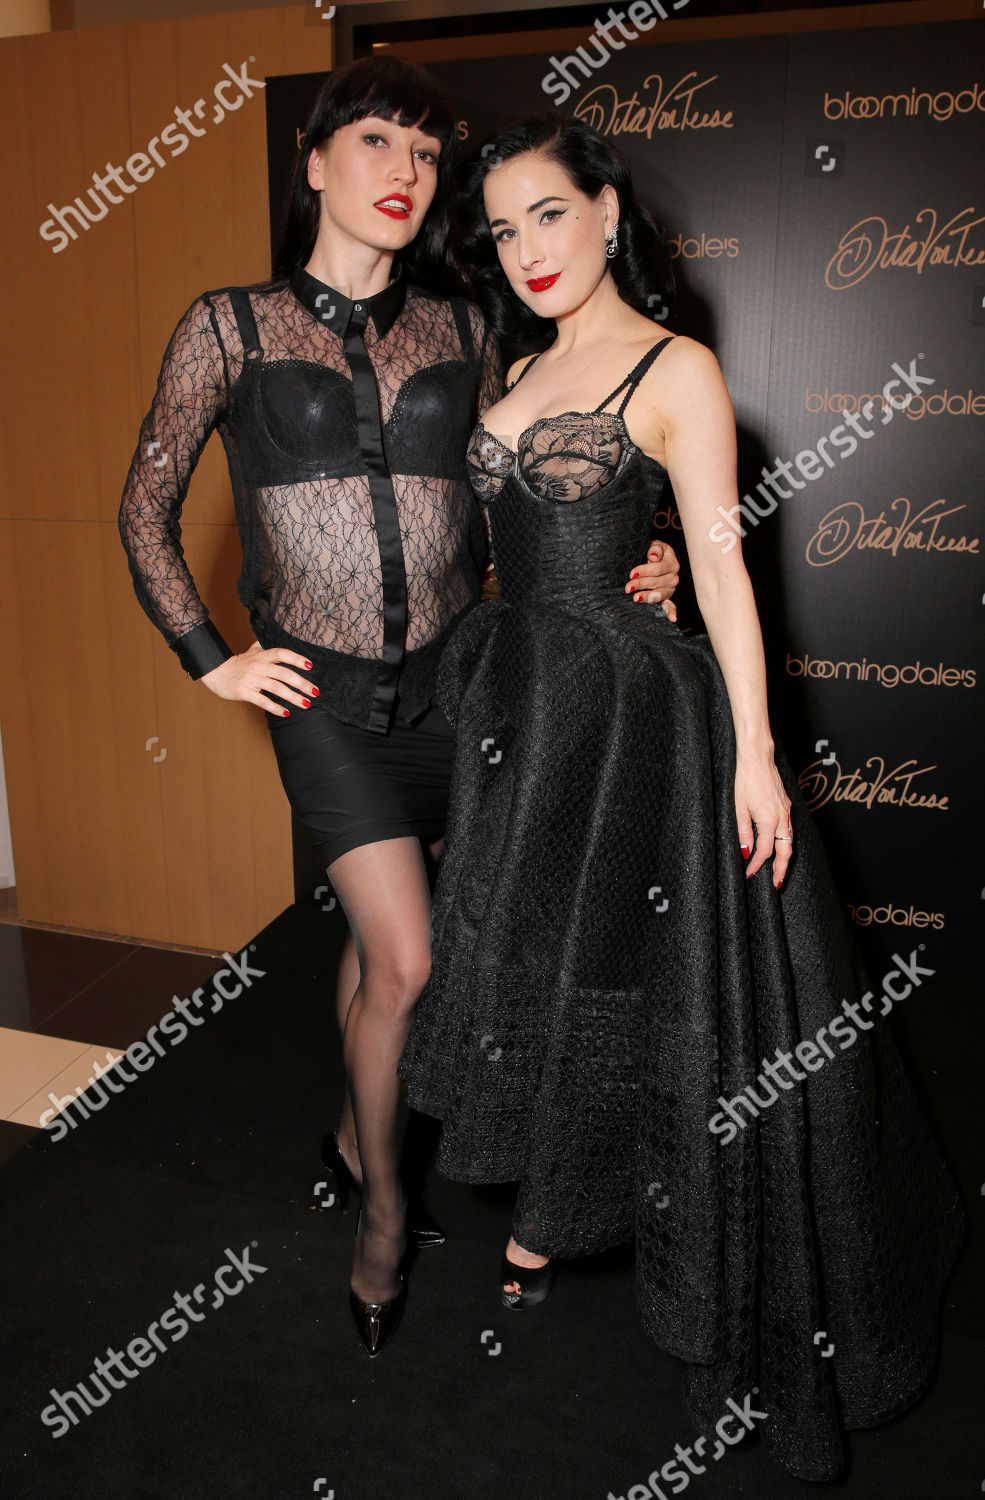 187a6c996a2 Stock photo of West Coast Launch of Dita Von Teese Lingerie at  Bloomingdale s Century City